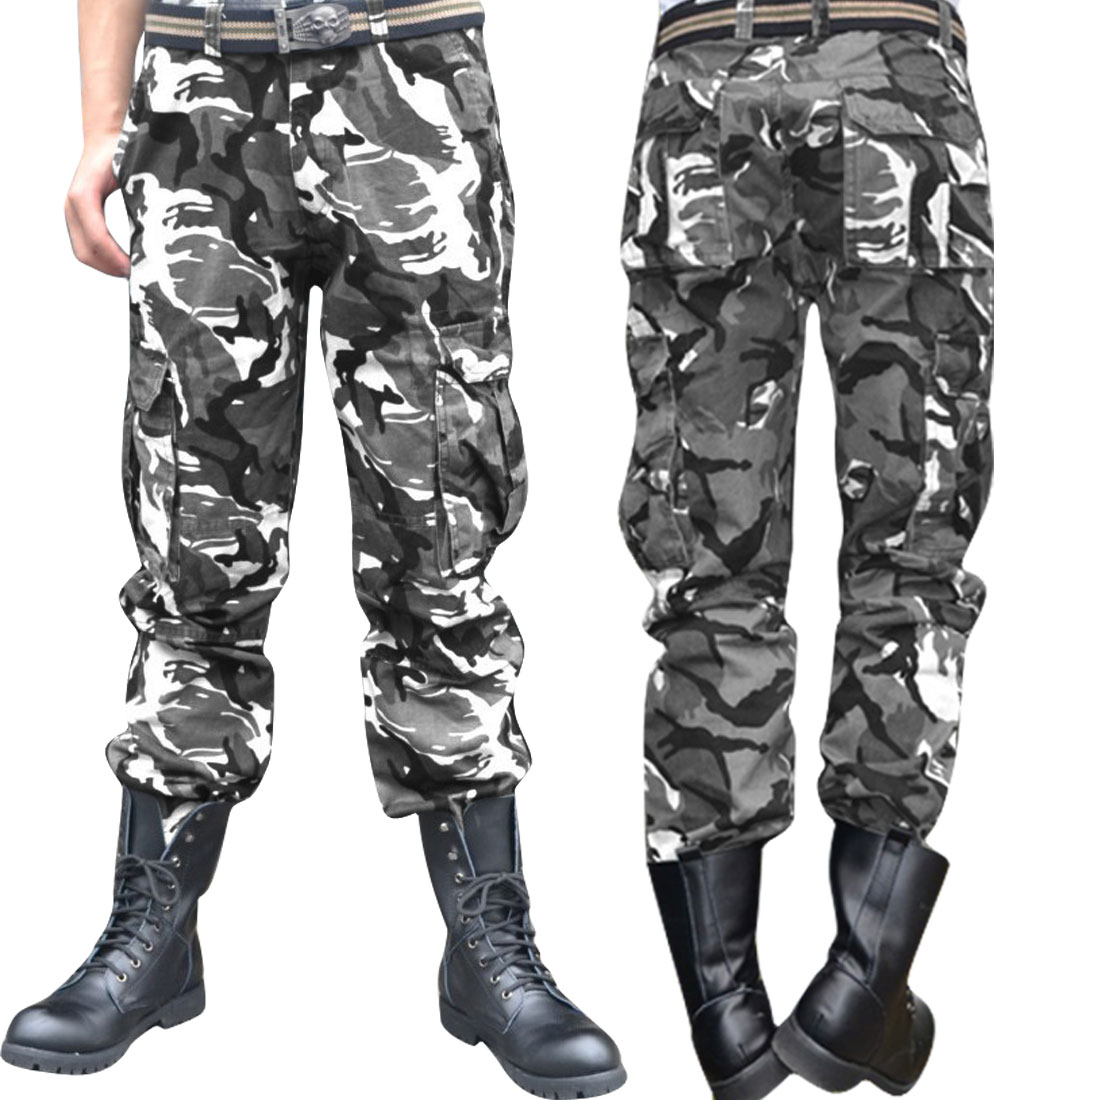 Men Zip Fly Side Pockets Camouflage Prints Black White Gray Cargo Pants W36